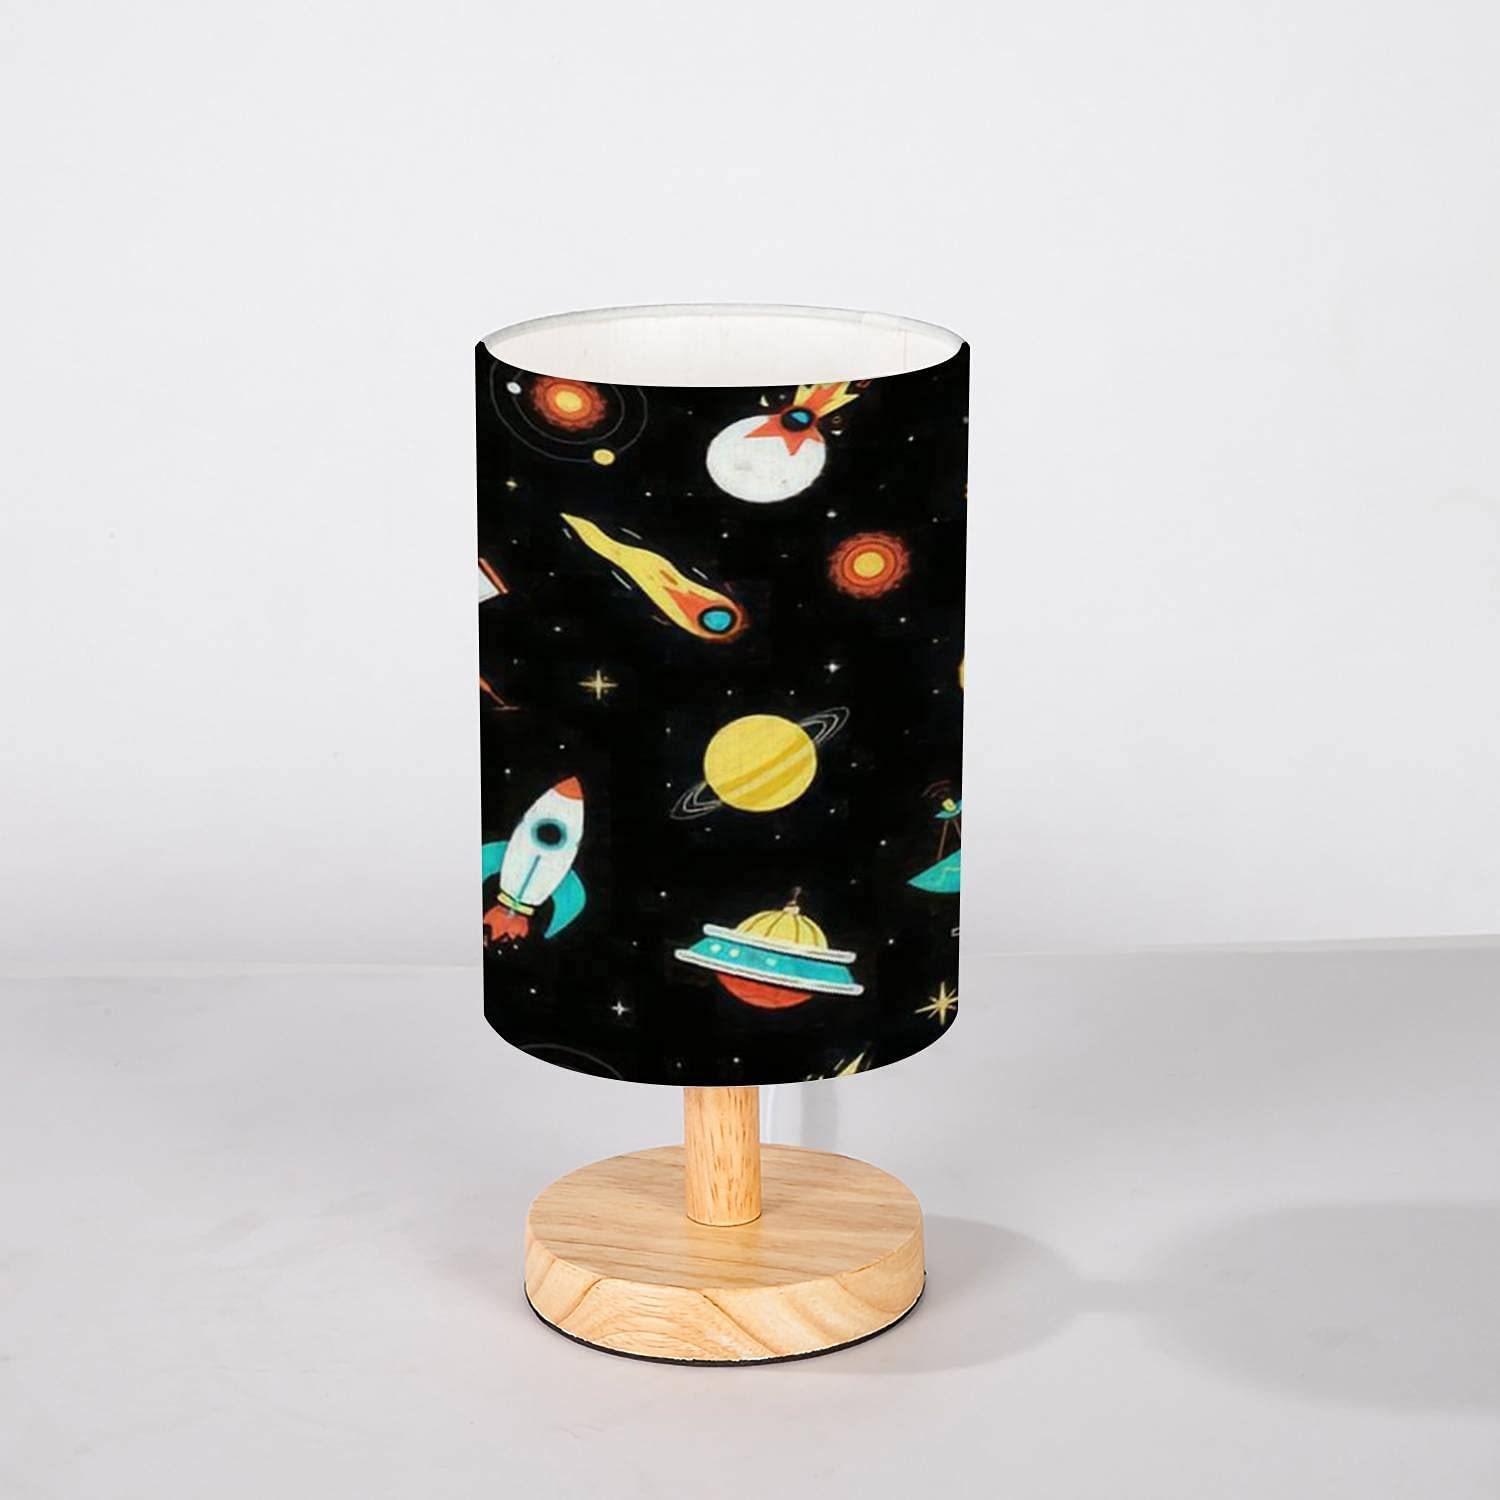 Minimalist Bedside Detroit Mall Table Lamp Outer Design Flat Elegant Colorful Space S